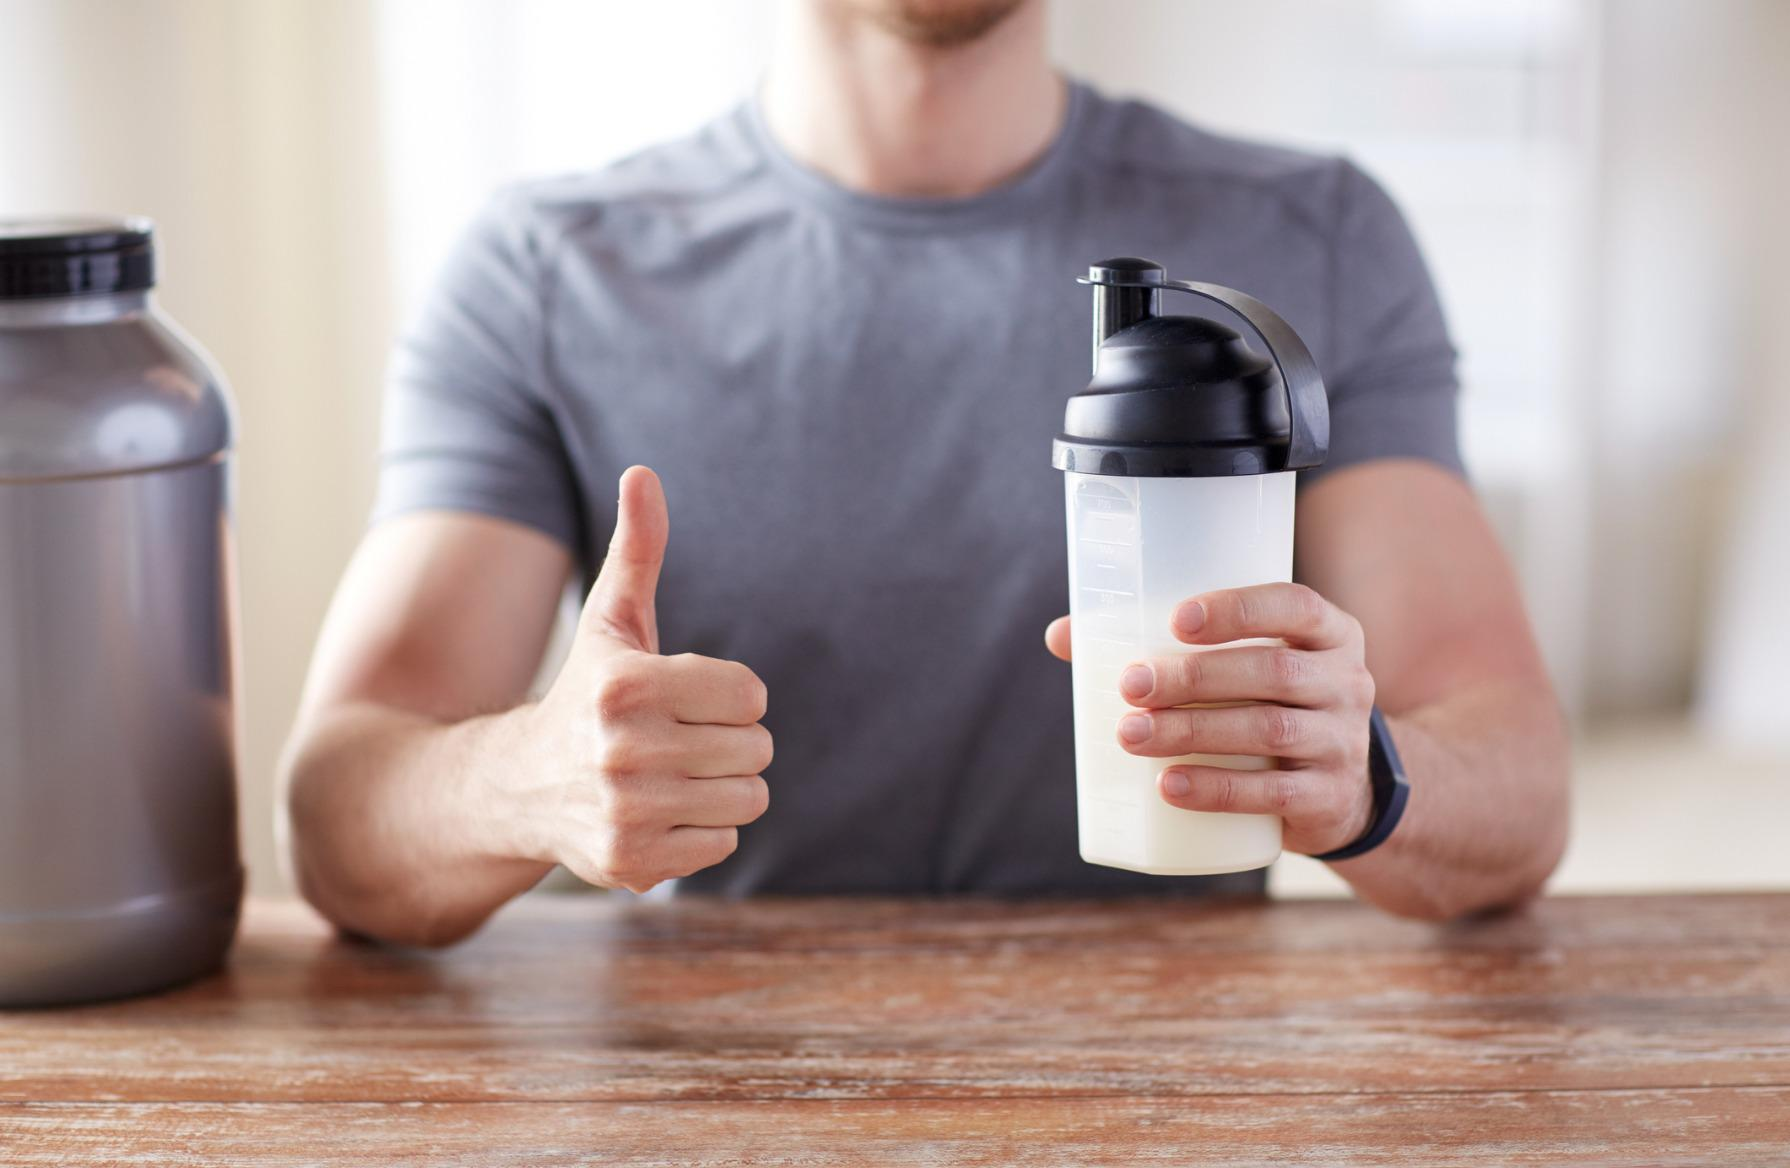 What Is Pre-Workout? | The Active Times